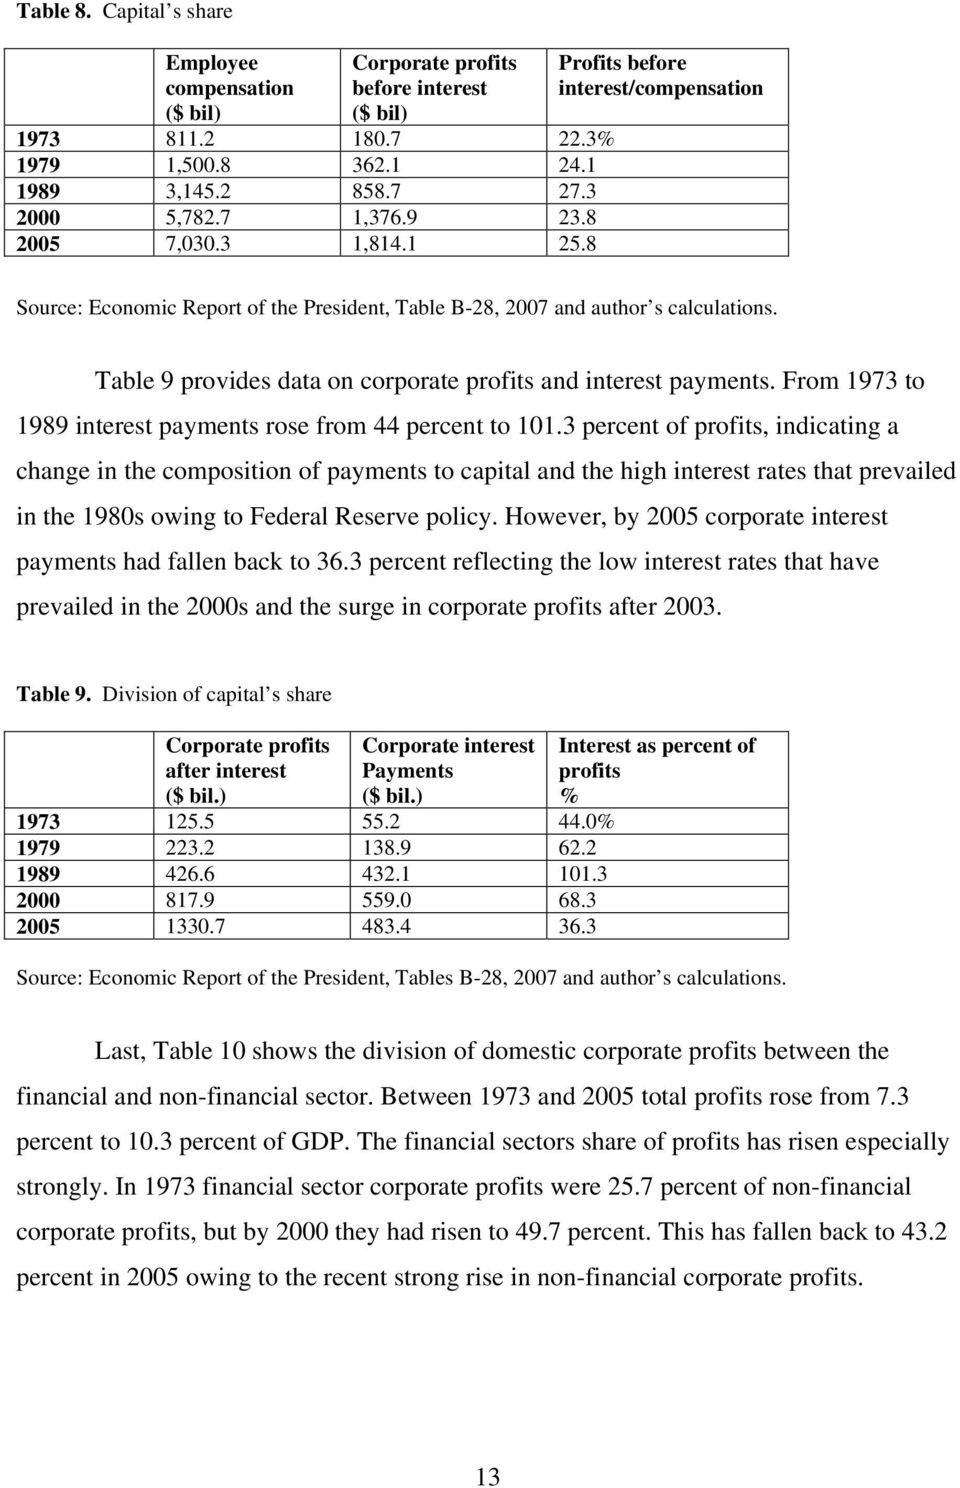 Table 9 provides data on corporate profits and interest payments. From 1973 to 1989 interest payments rose from 44 percent to 101.